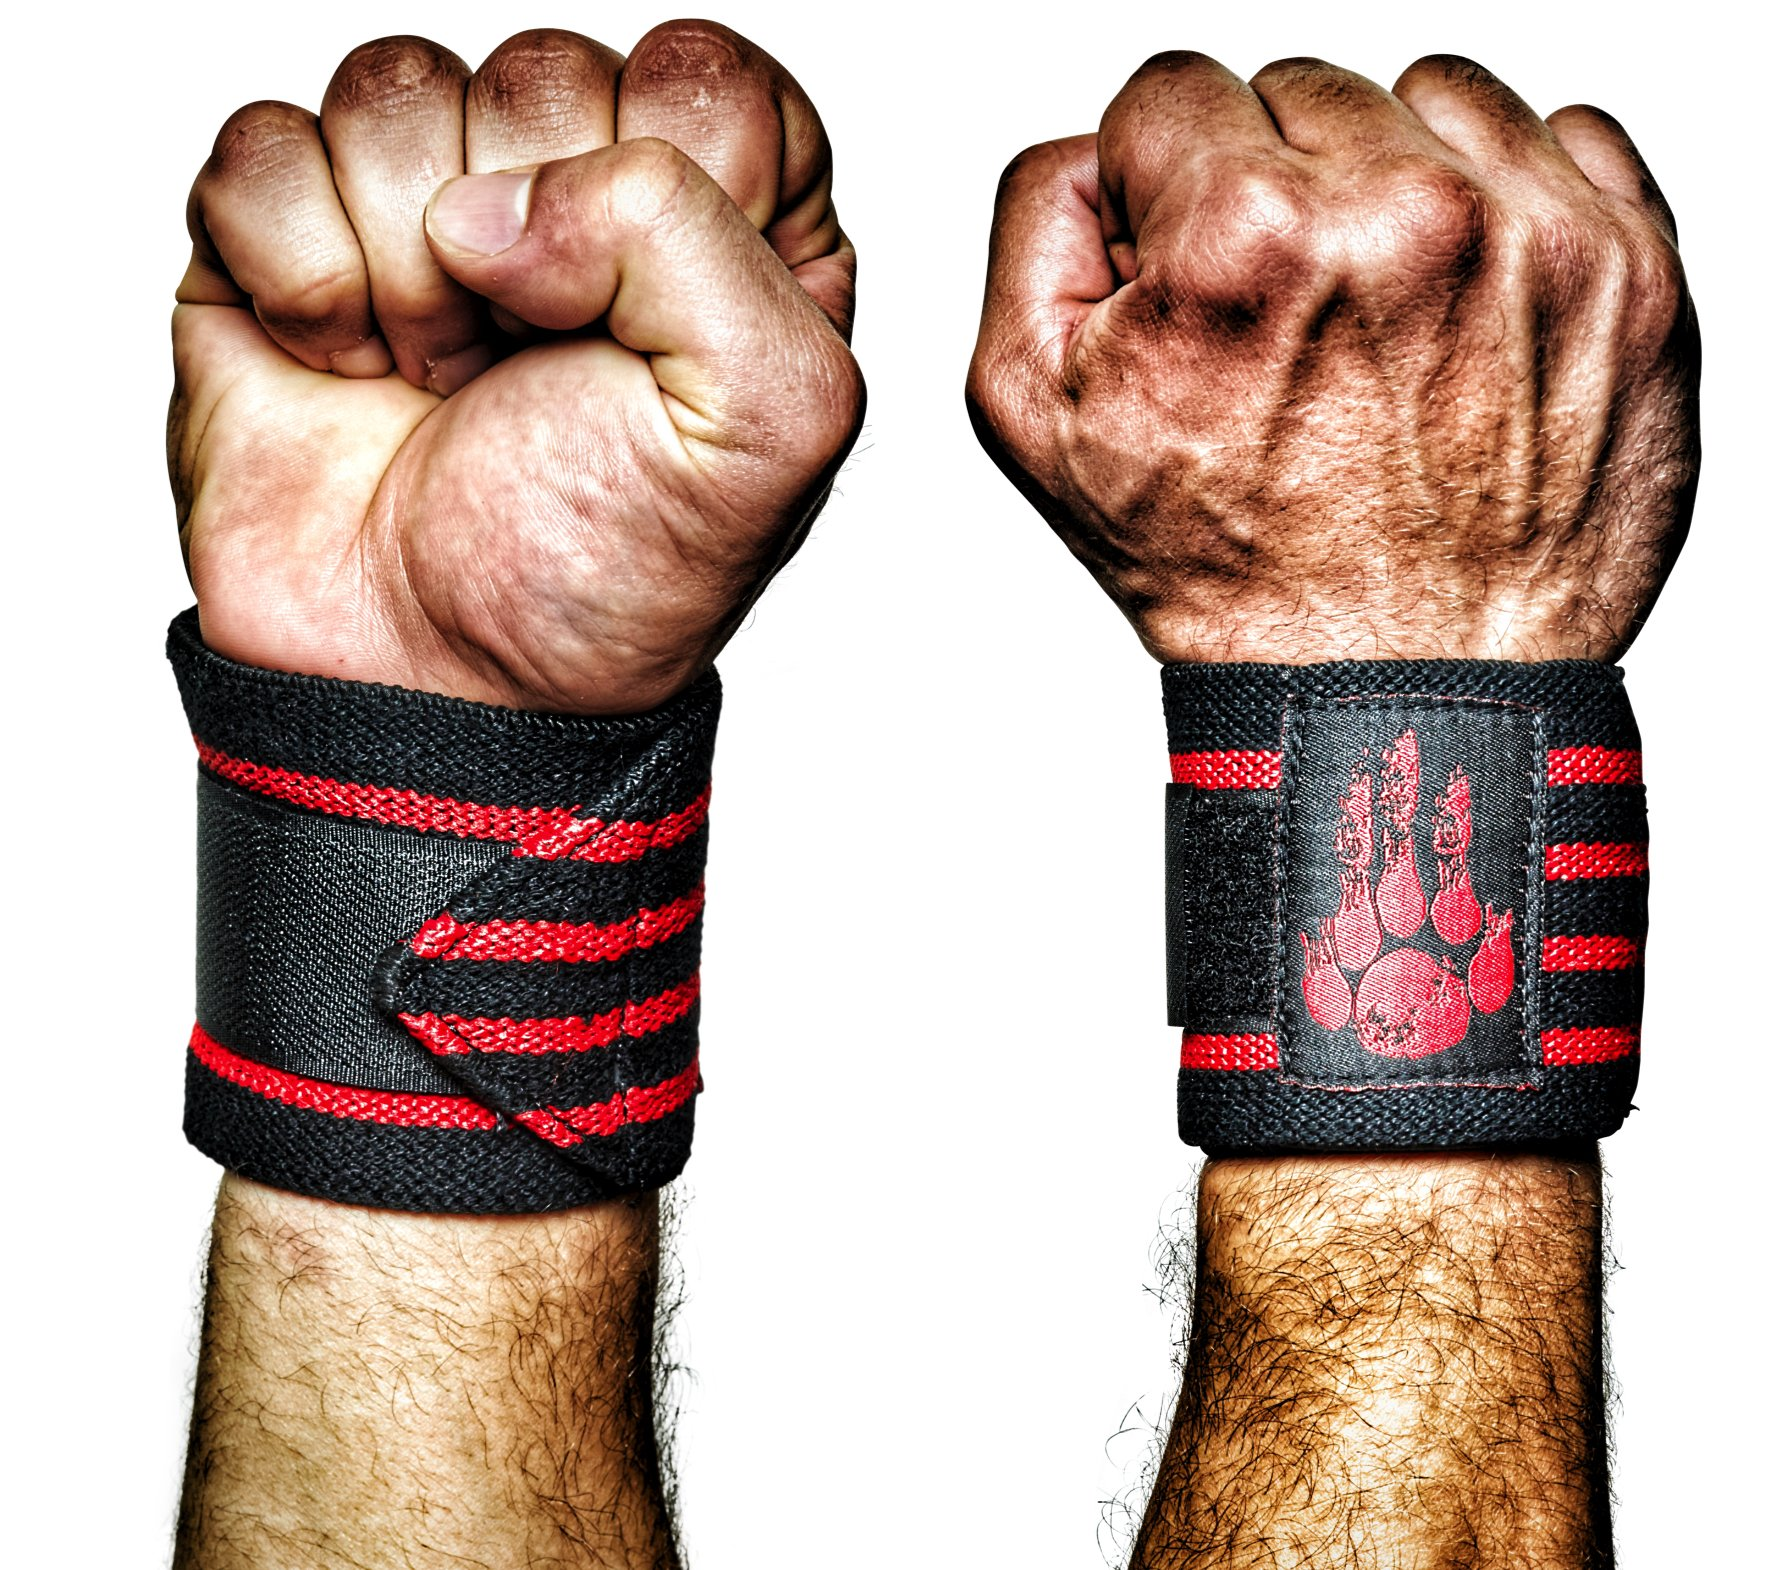 MANIMAL: The Best Weightlifting Straps with Superior Wrist Support, 1 Wrist Wraps Trusted by Professional Powerlifting, Strongman, Crossfit and Olympic Athletes - Ravenous